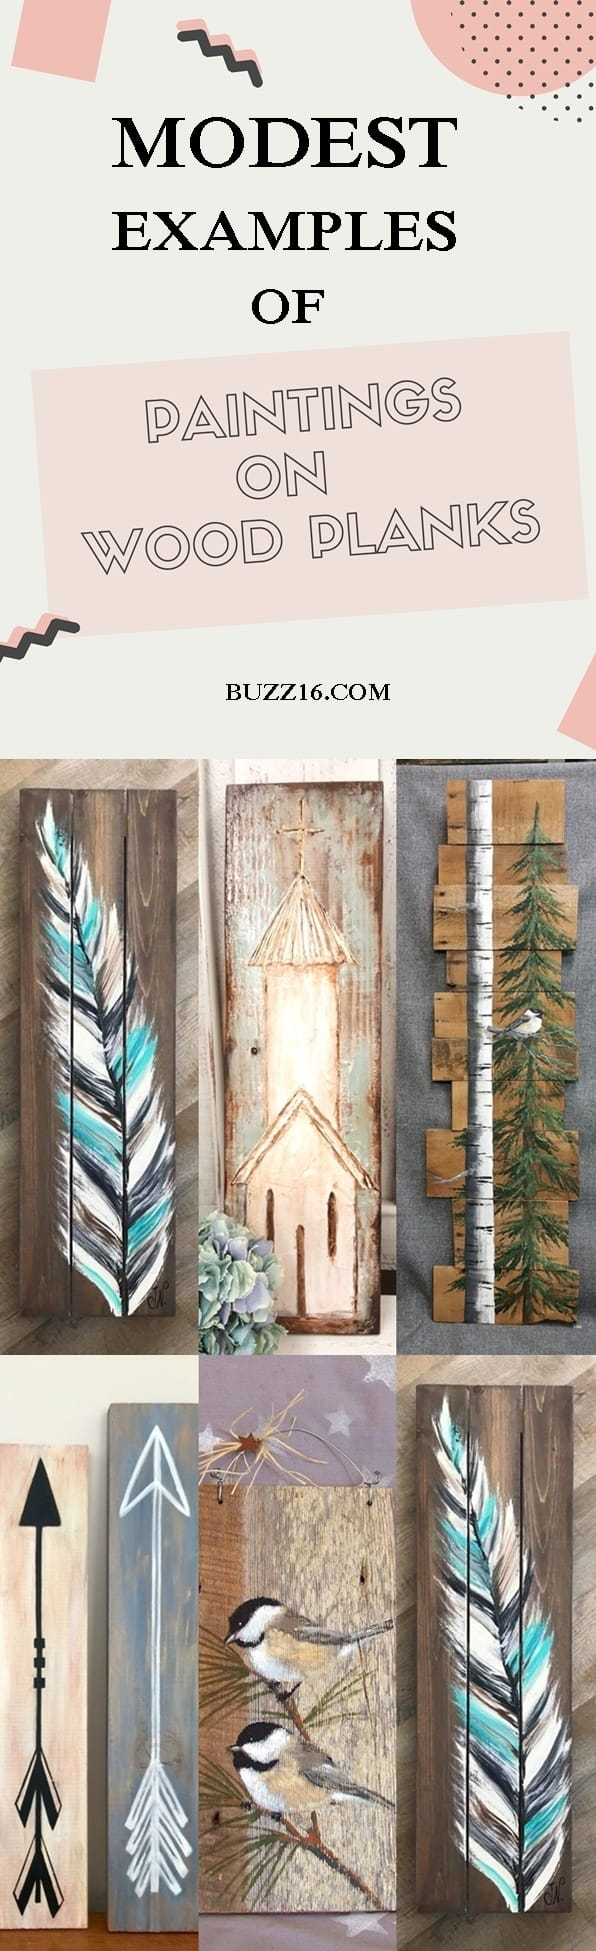 40 Modest Examples of Paintings On Wood Planks